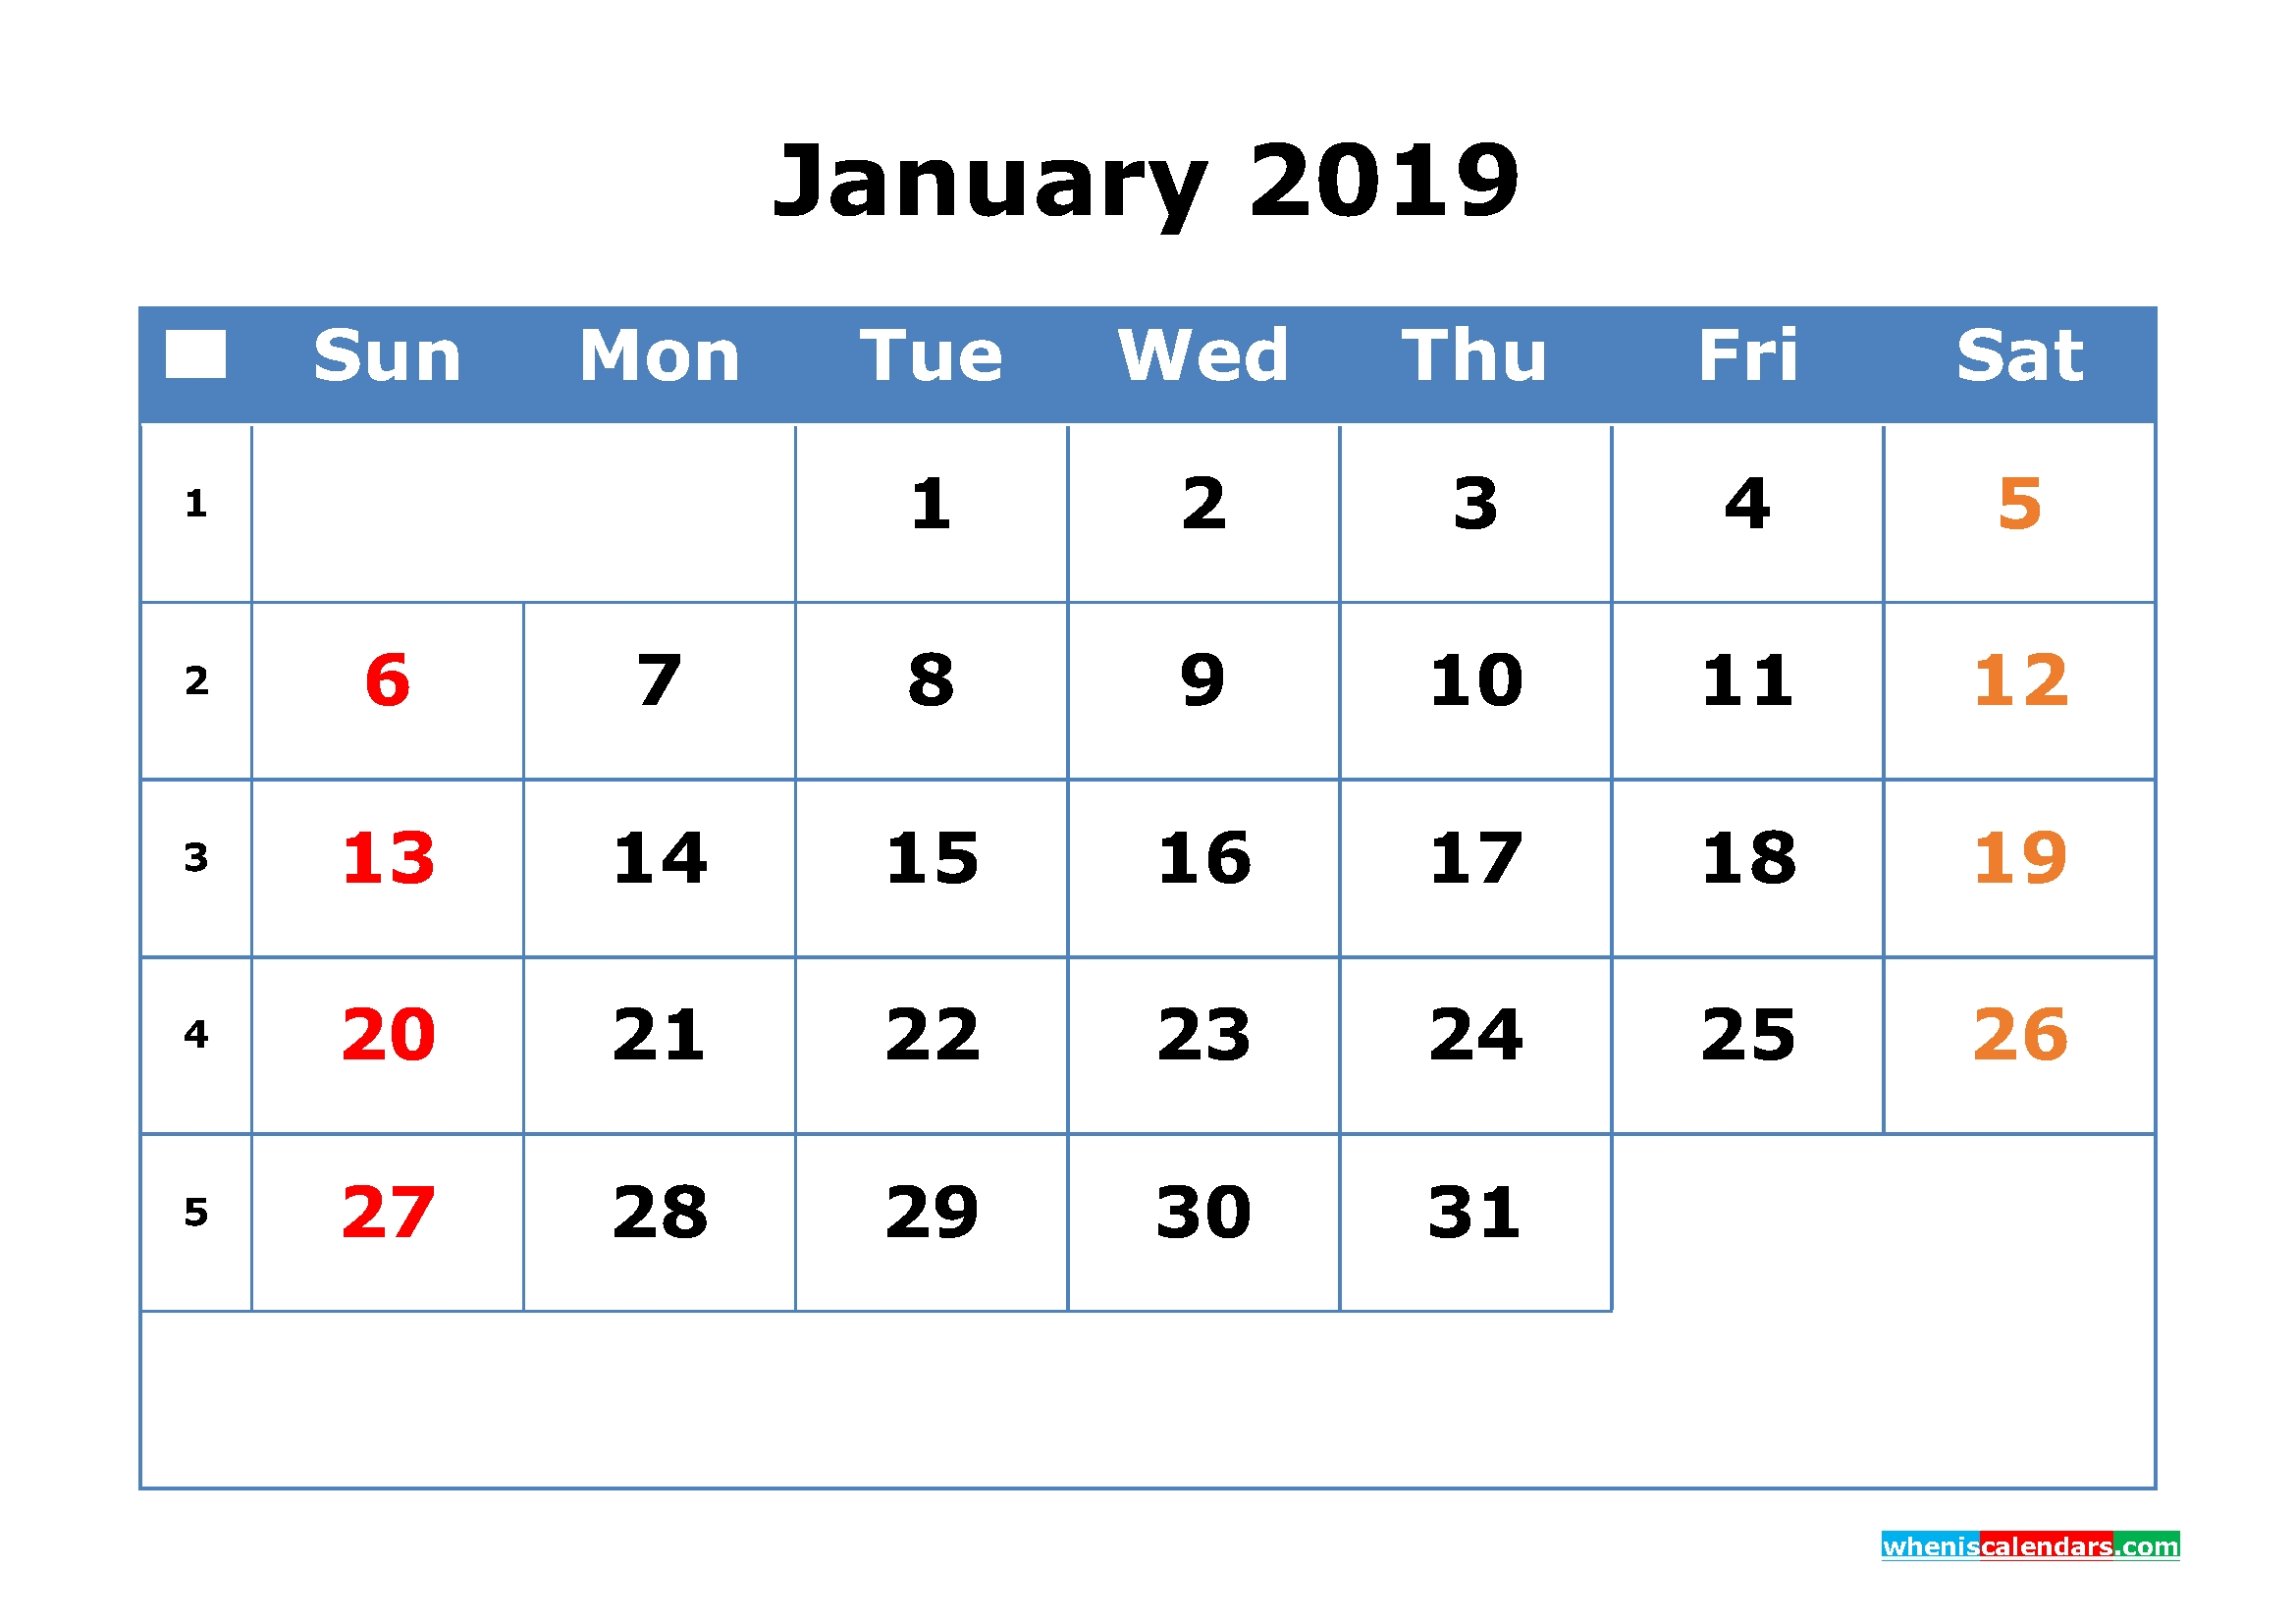 2019 Calendar With Week Numbers Printable As Pdf, Image